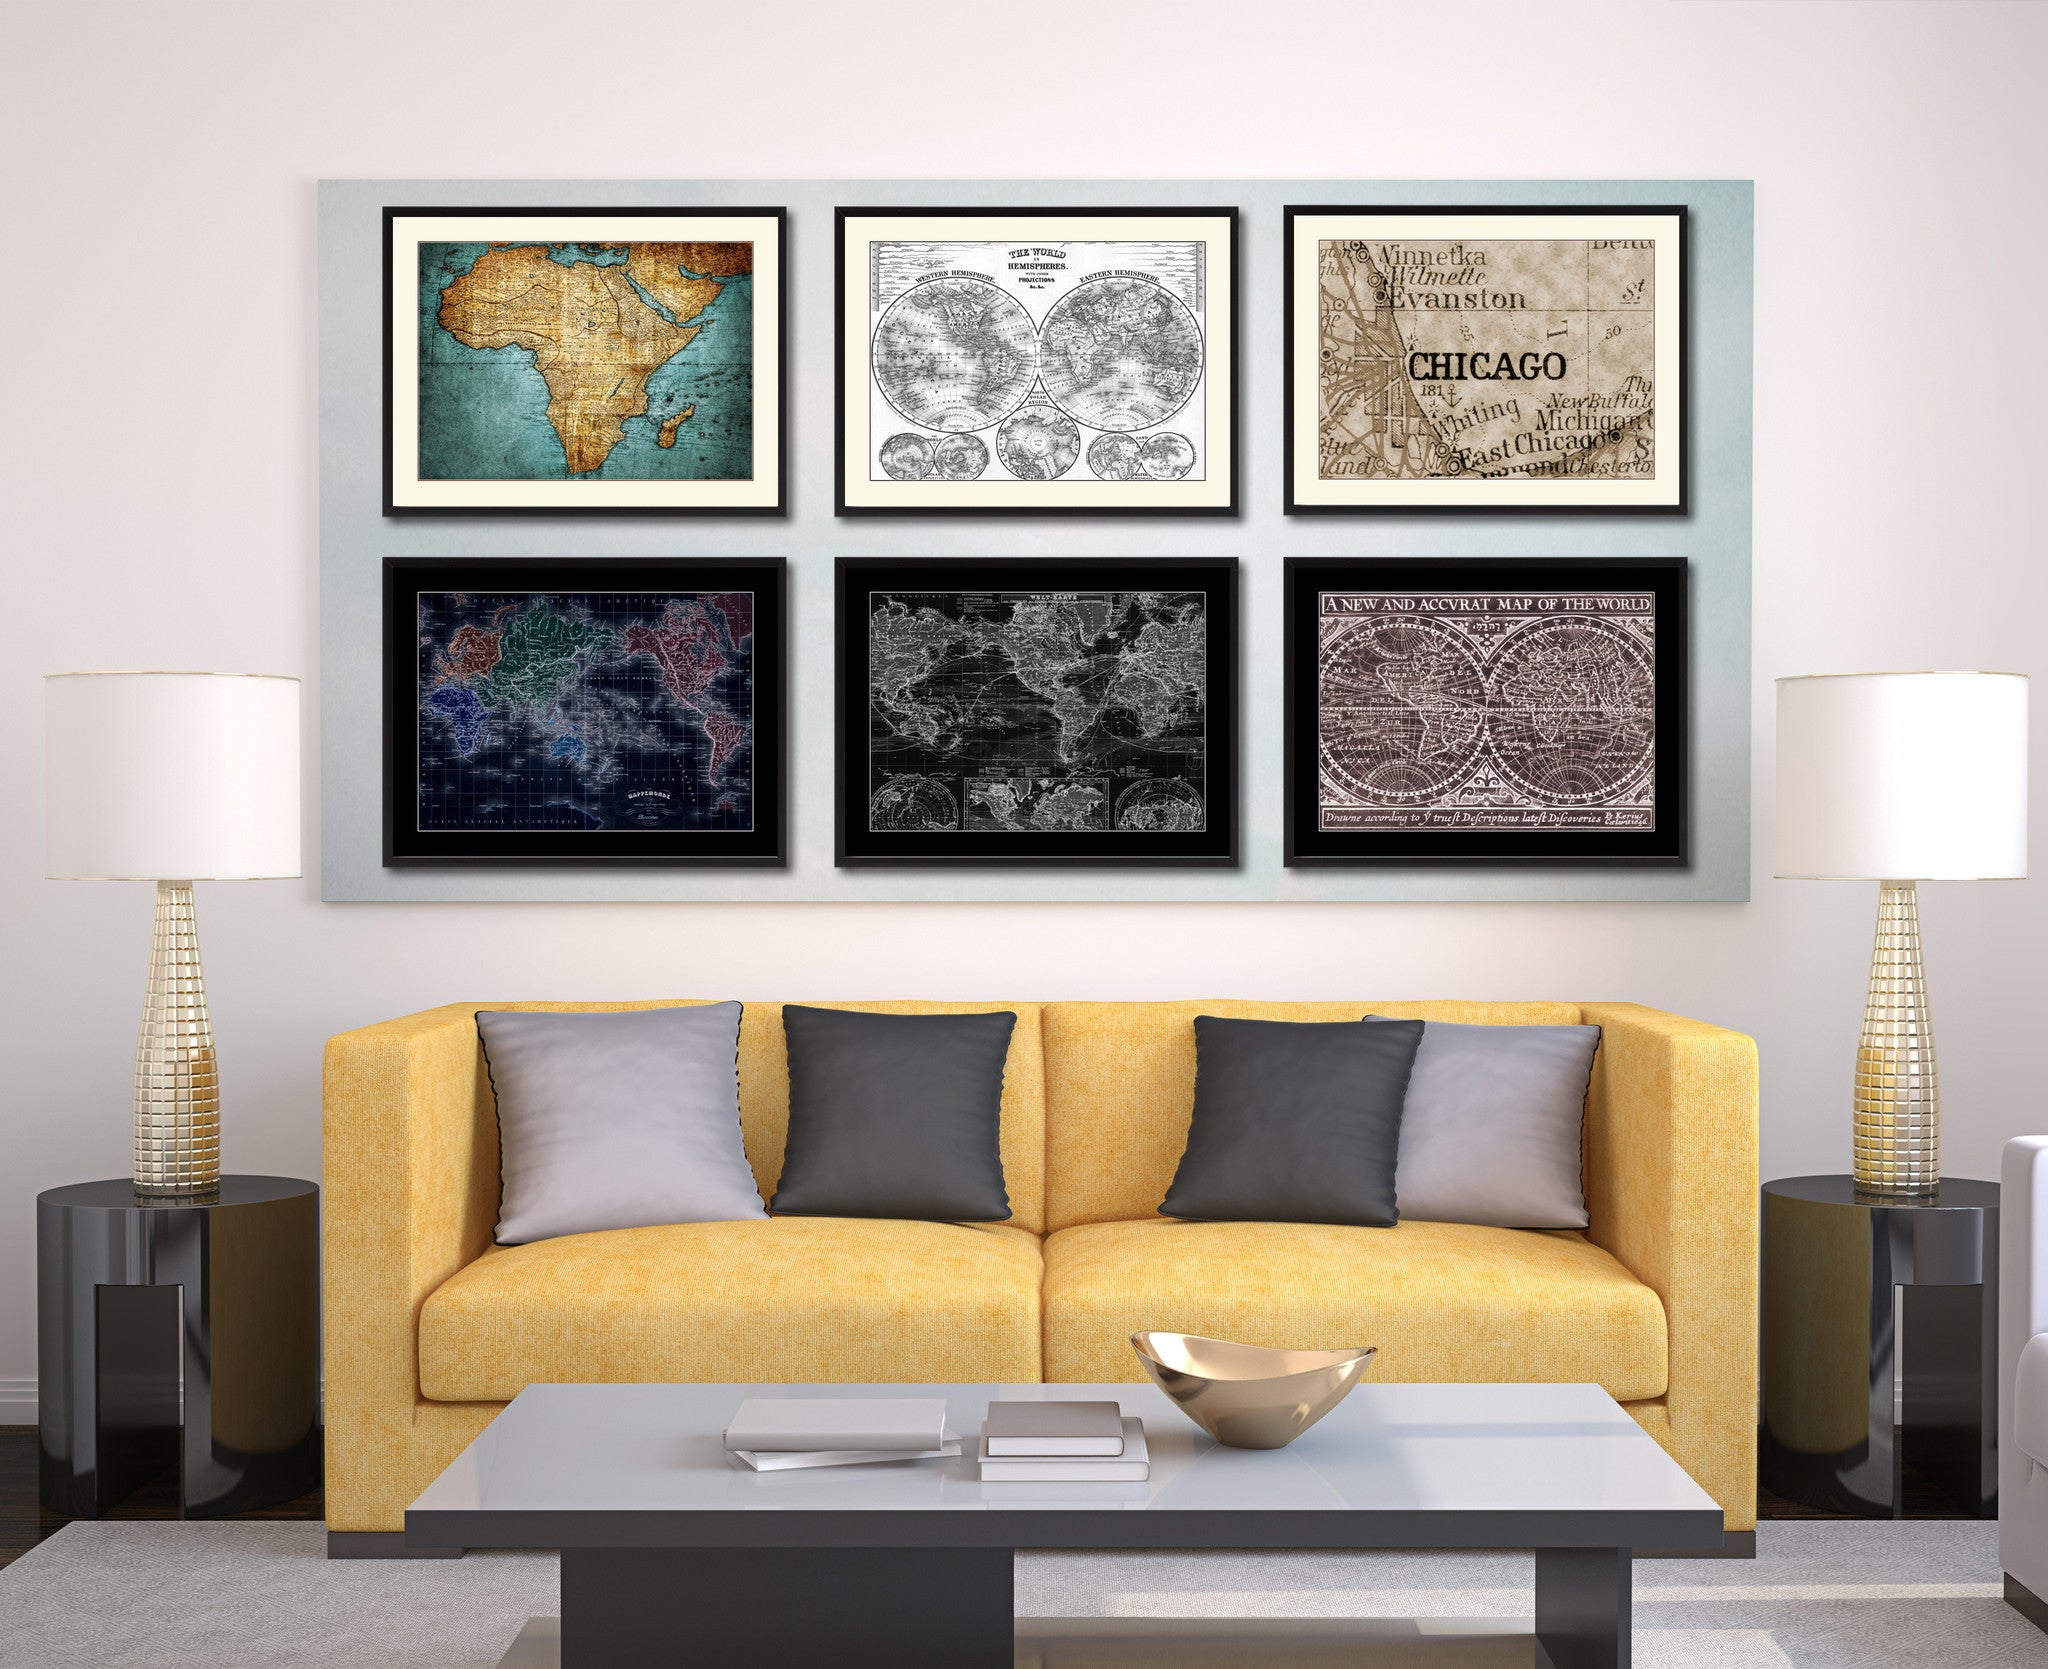 Chicago Illinois Vintage Sepia Map Canvas Print Picture Frame Gifts Home Decor Wall Art Decoration